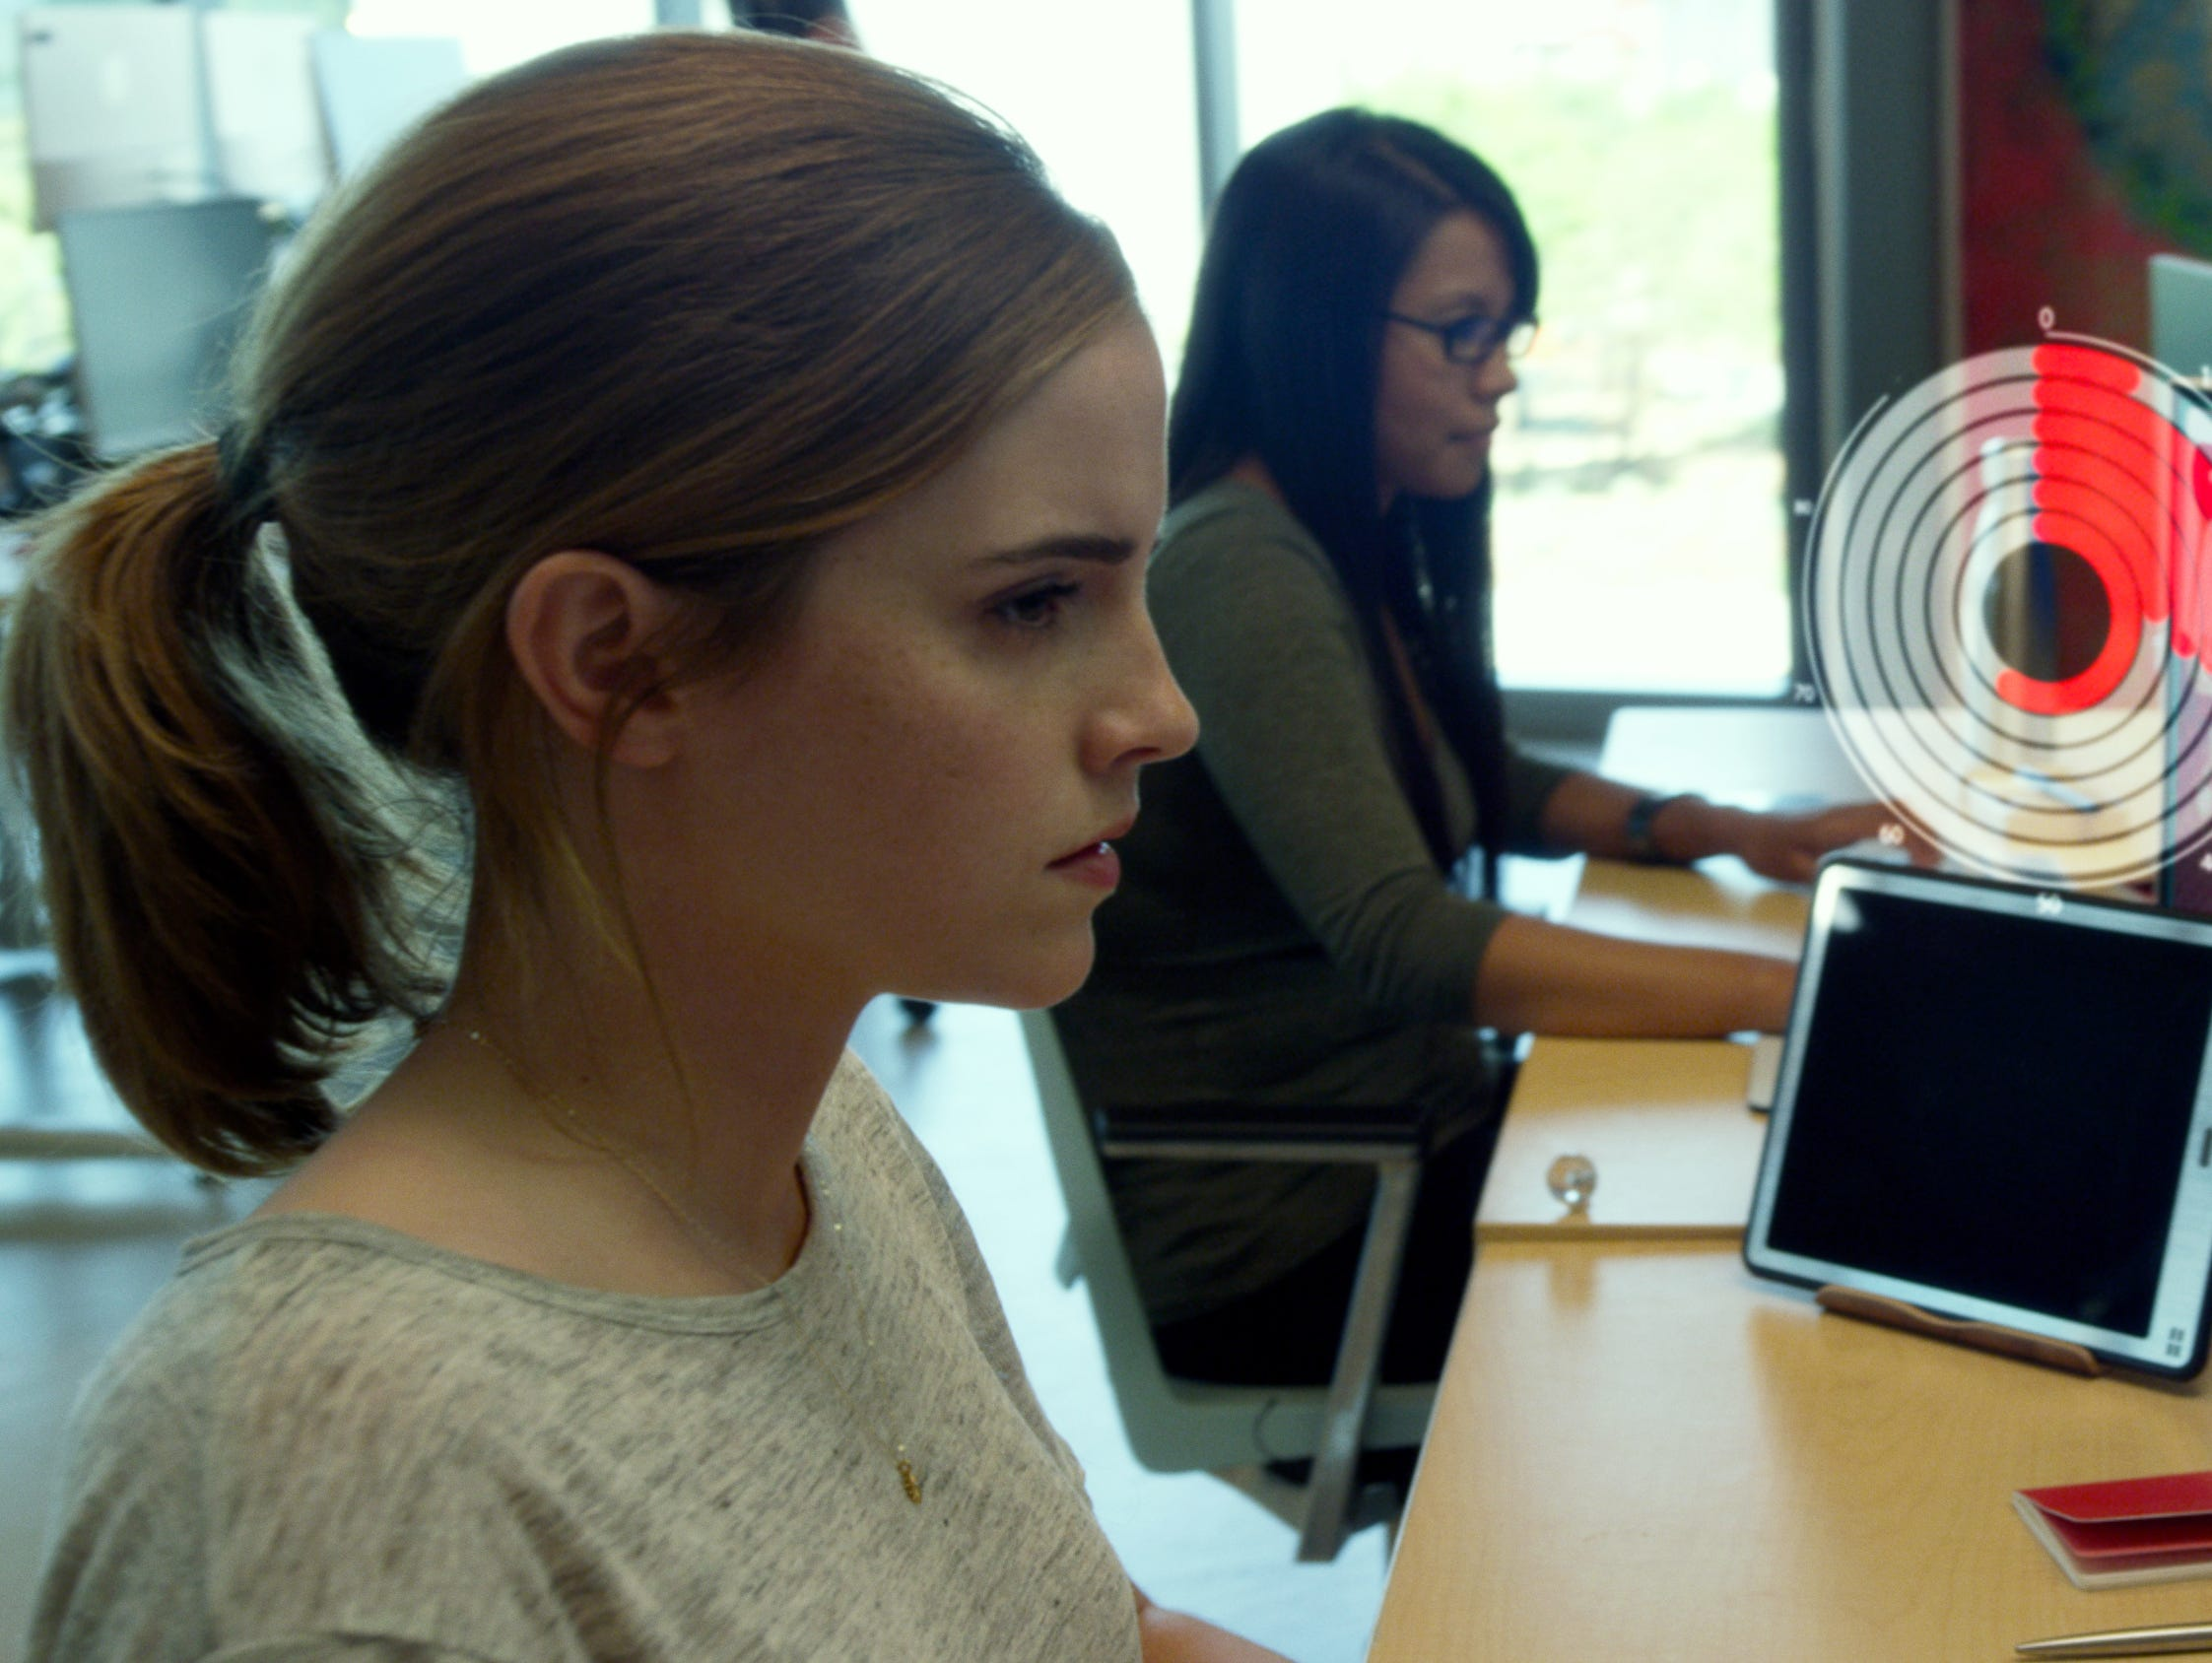 Insiders get 2 movie passes for just $6.95 to see The Circle starring Emma Watson and Tom Hanks.